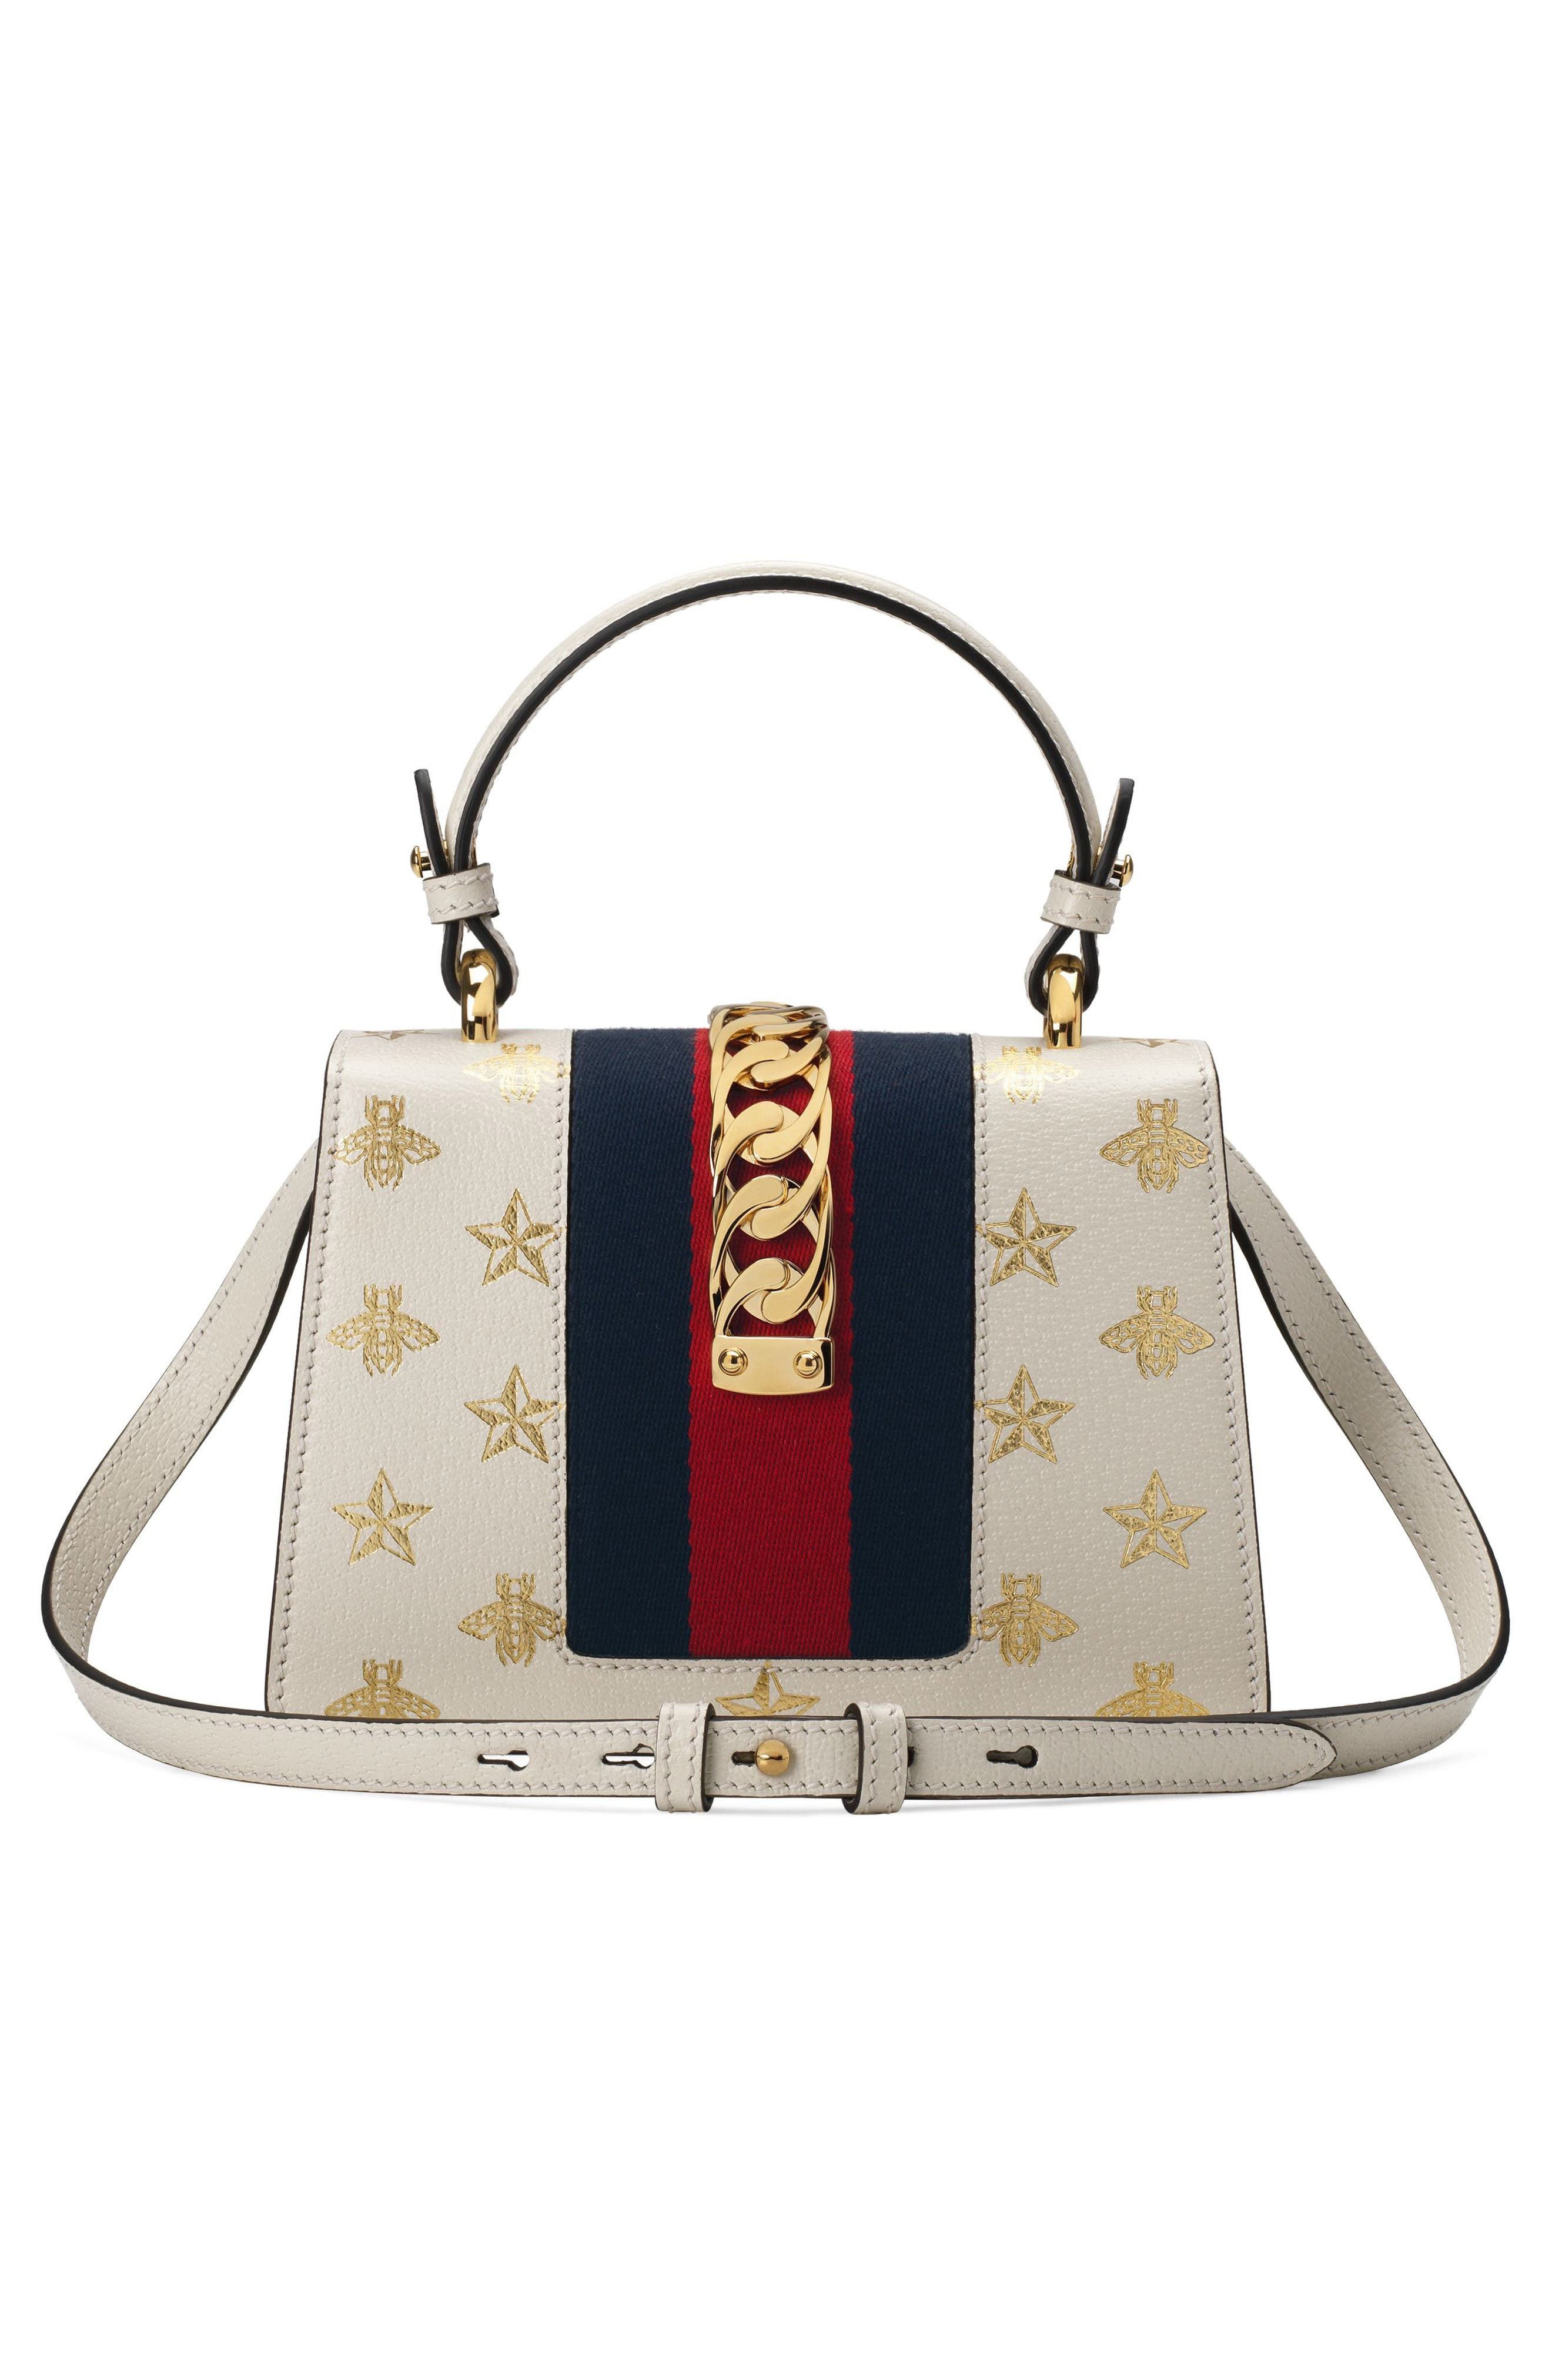 Small Sylvie Top Handle Leather Shoulder Bag,                             Alternate thumbnail 2, color,                             MYSTIC WHITE/ ORO/ BLUE/ RED